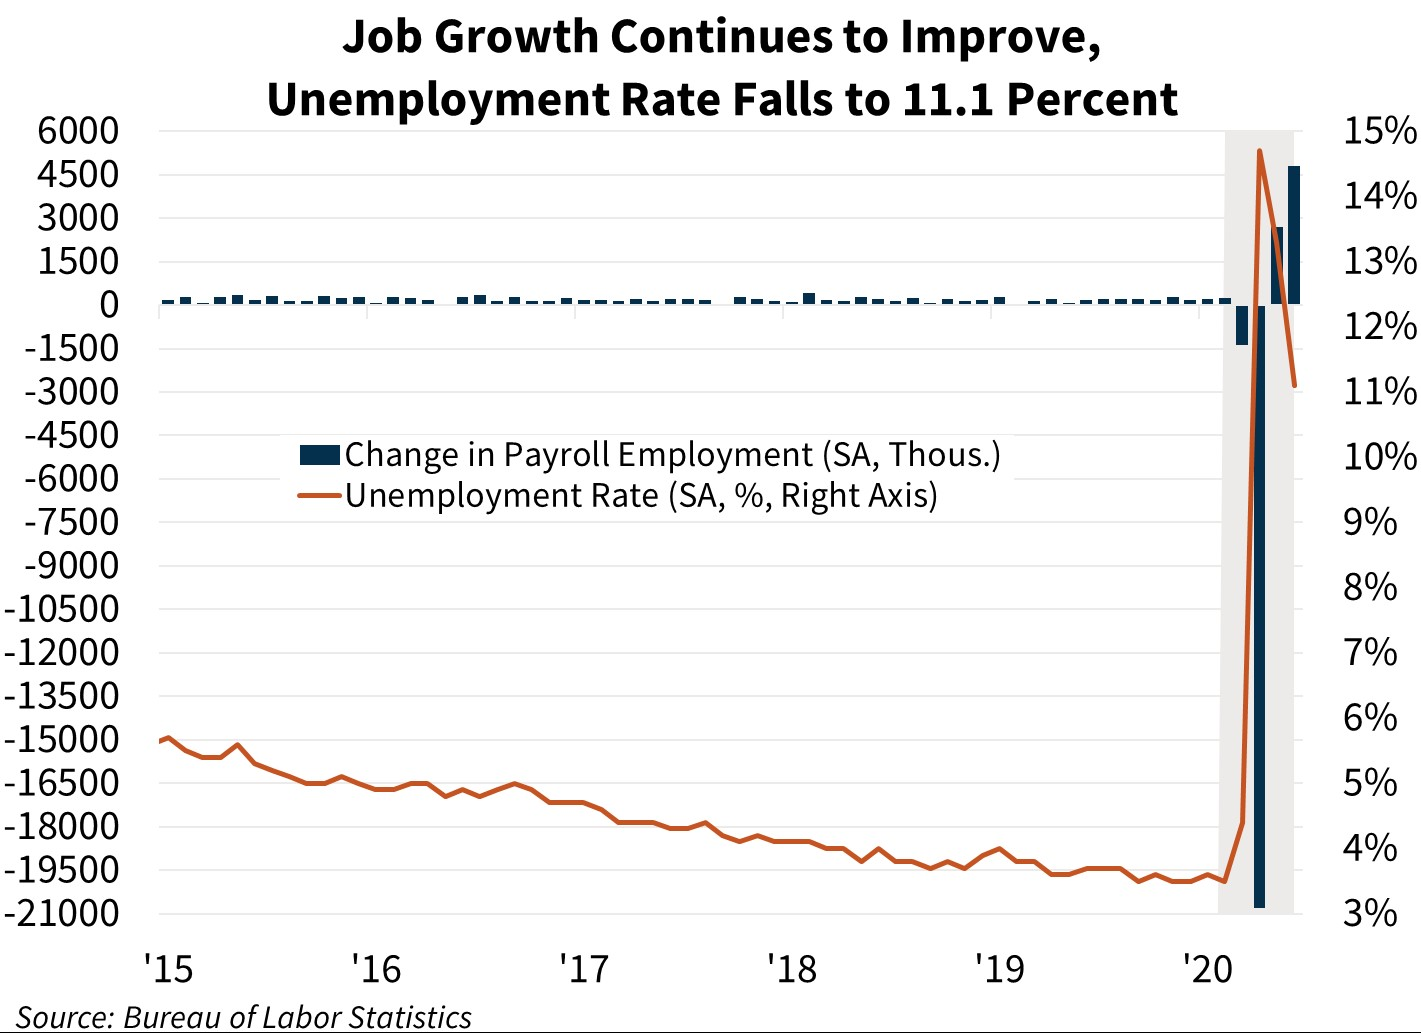 Job Growth Continues to Improve, Unemployment Rate Falls to 11.1 Percent